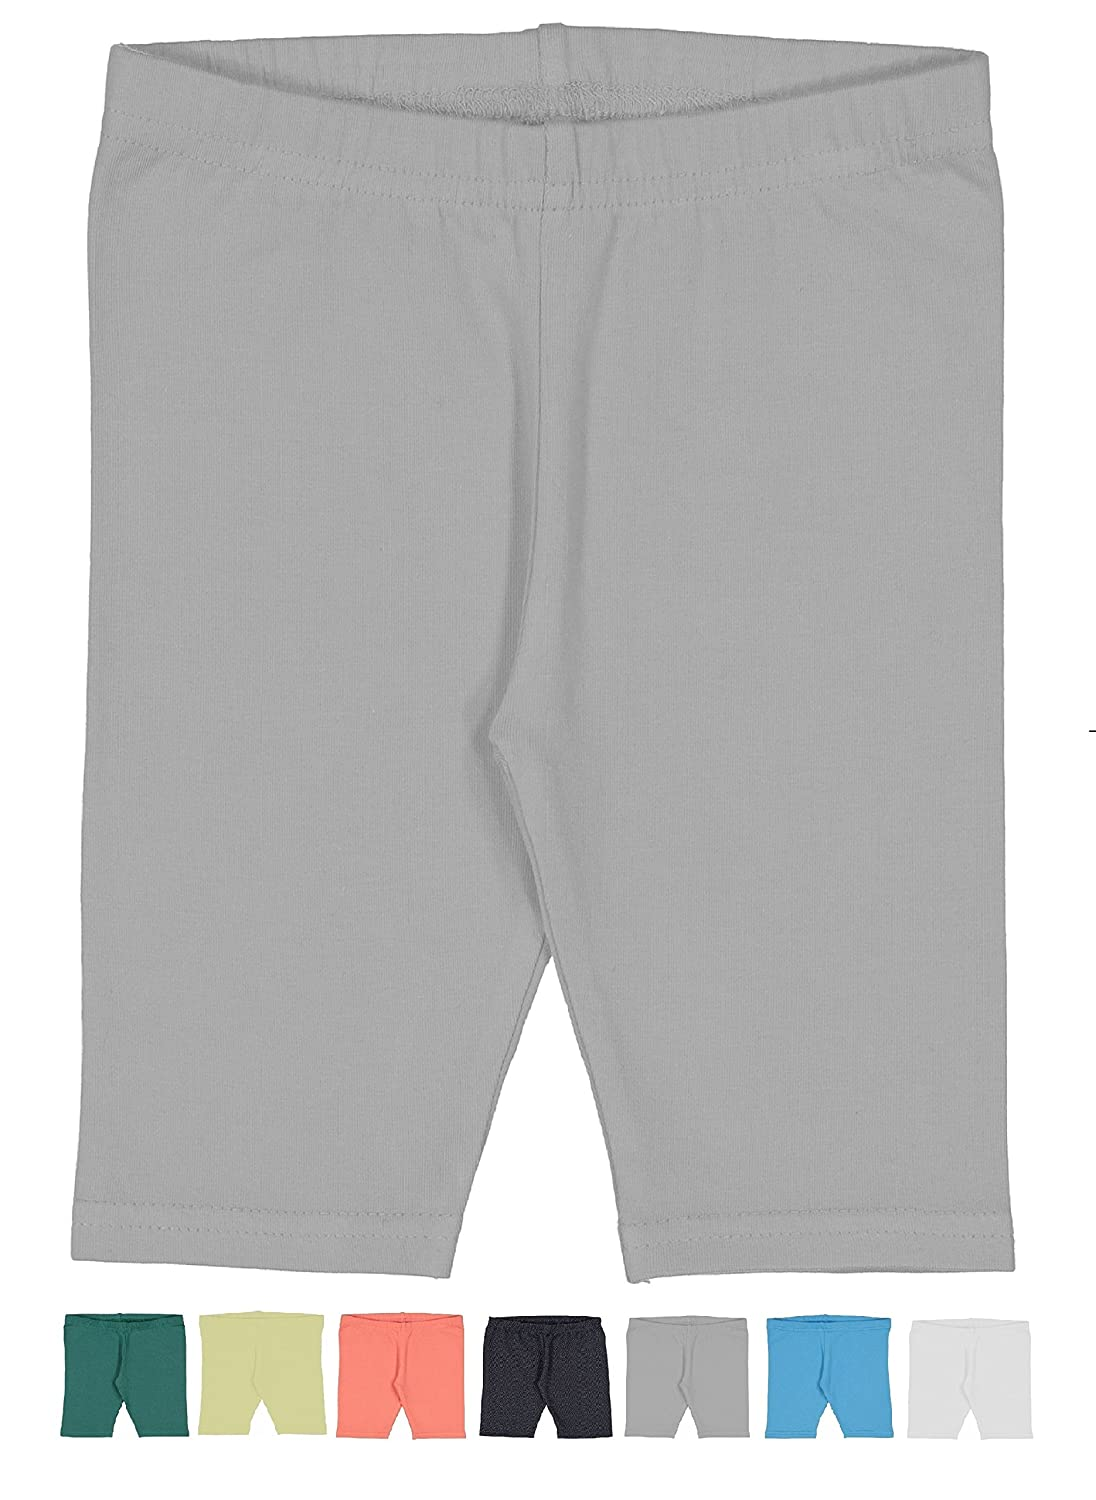 19ffaac8de COMFORTABLE WEAR: Made of 95% cotton and 5% spandex, our legging shorts  wick away sweat while providing a comfortable stretch, perfect for active  little ...